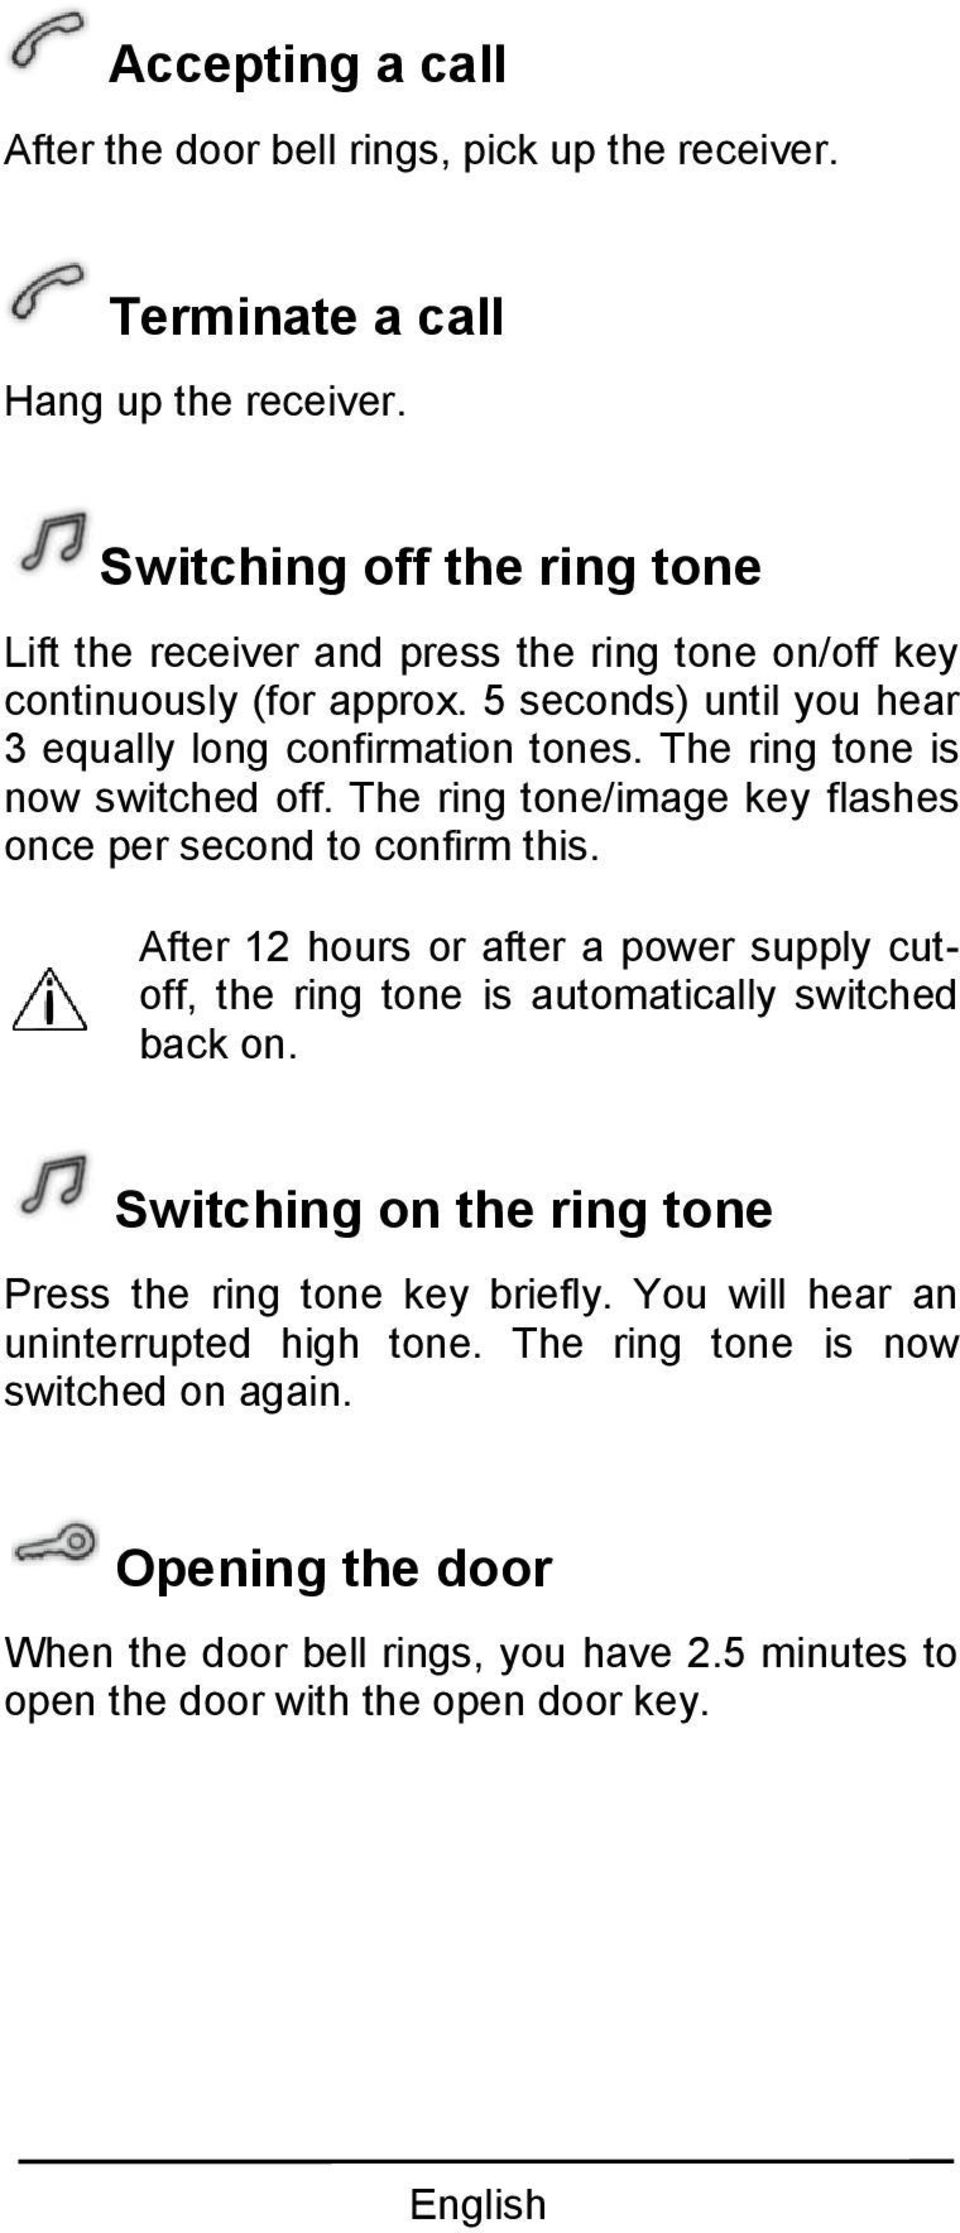 The ring tone is now switched off. The ring tone/image key flashes once per second to confirm this.